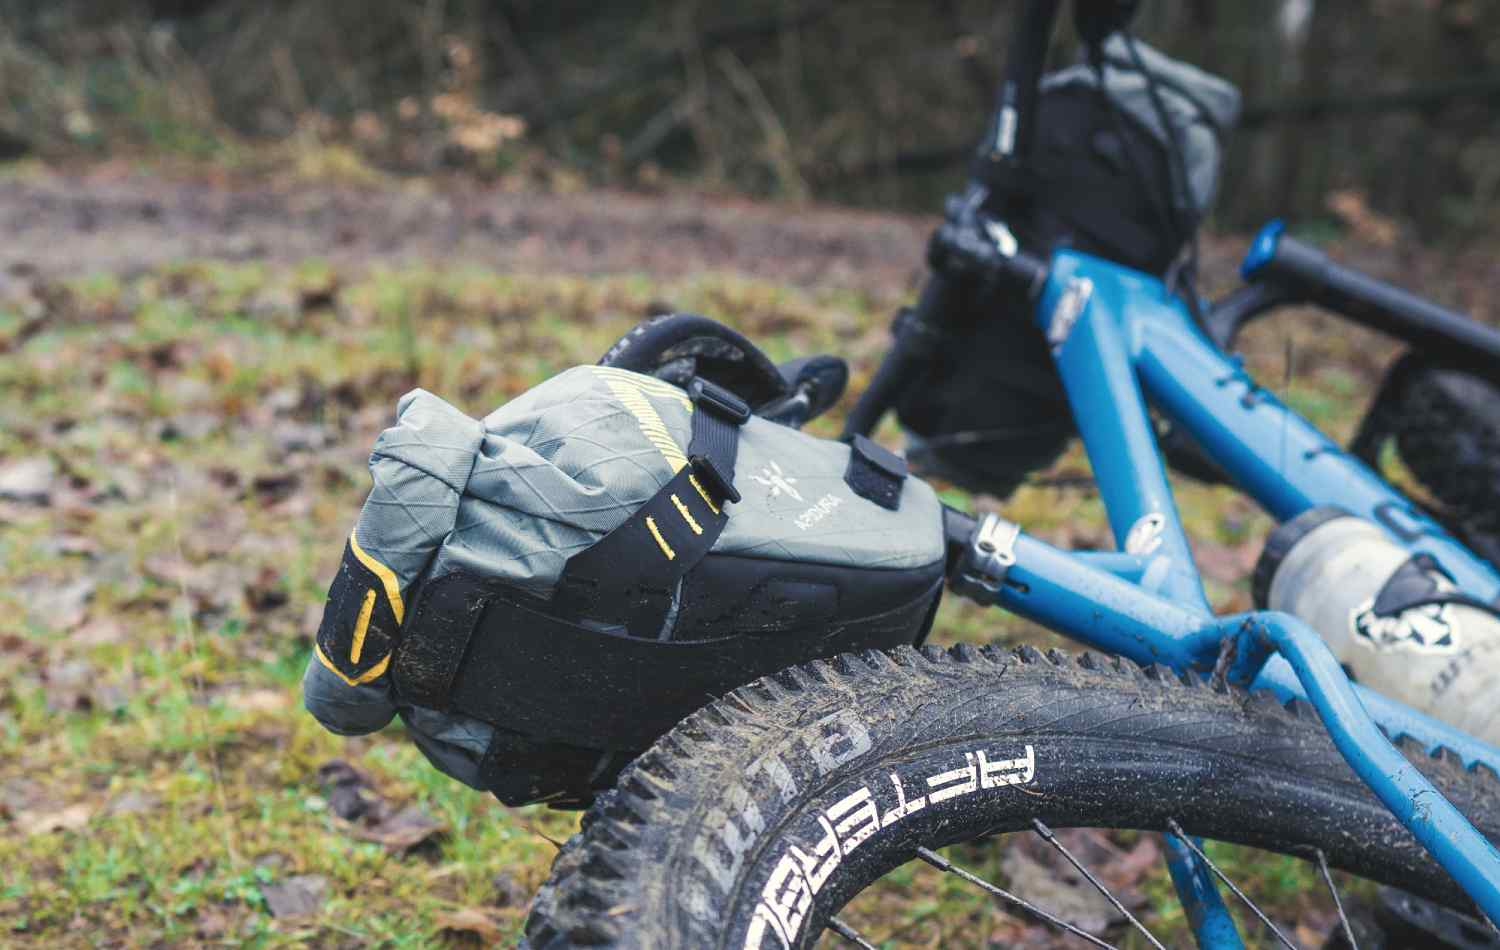 Dropper Saddle Pack on a Mountain bike